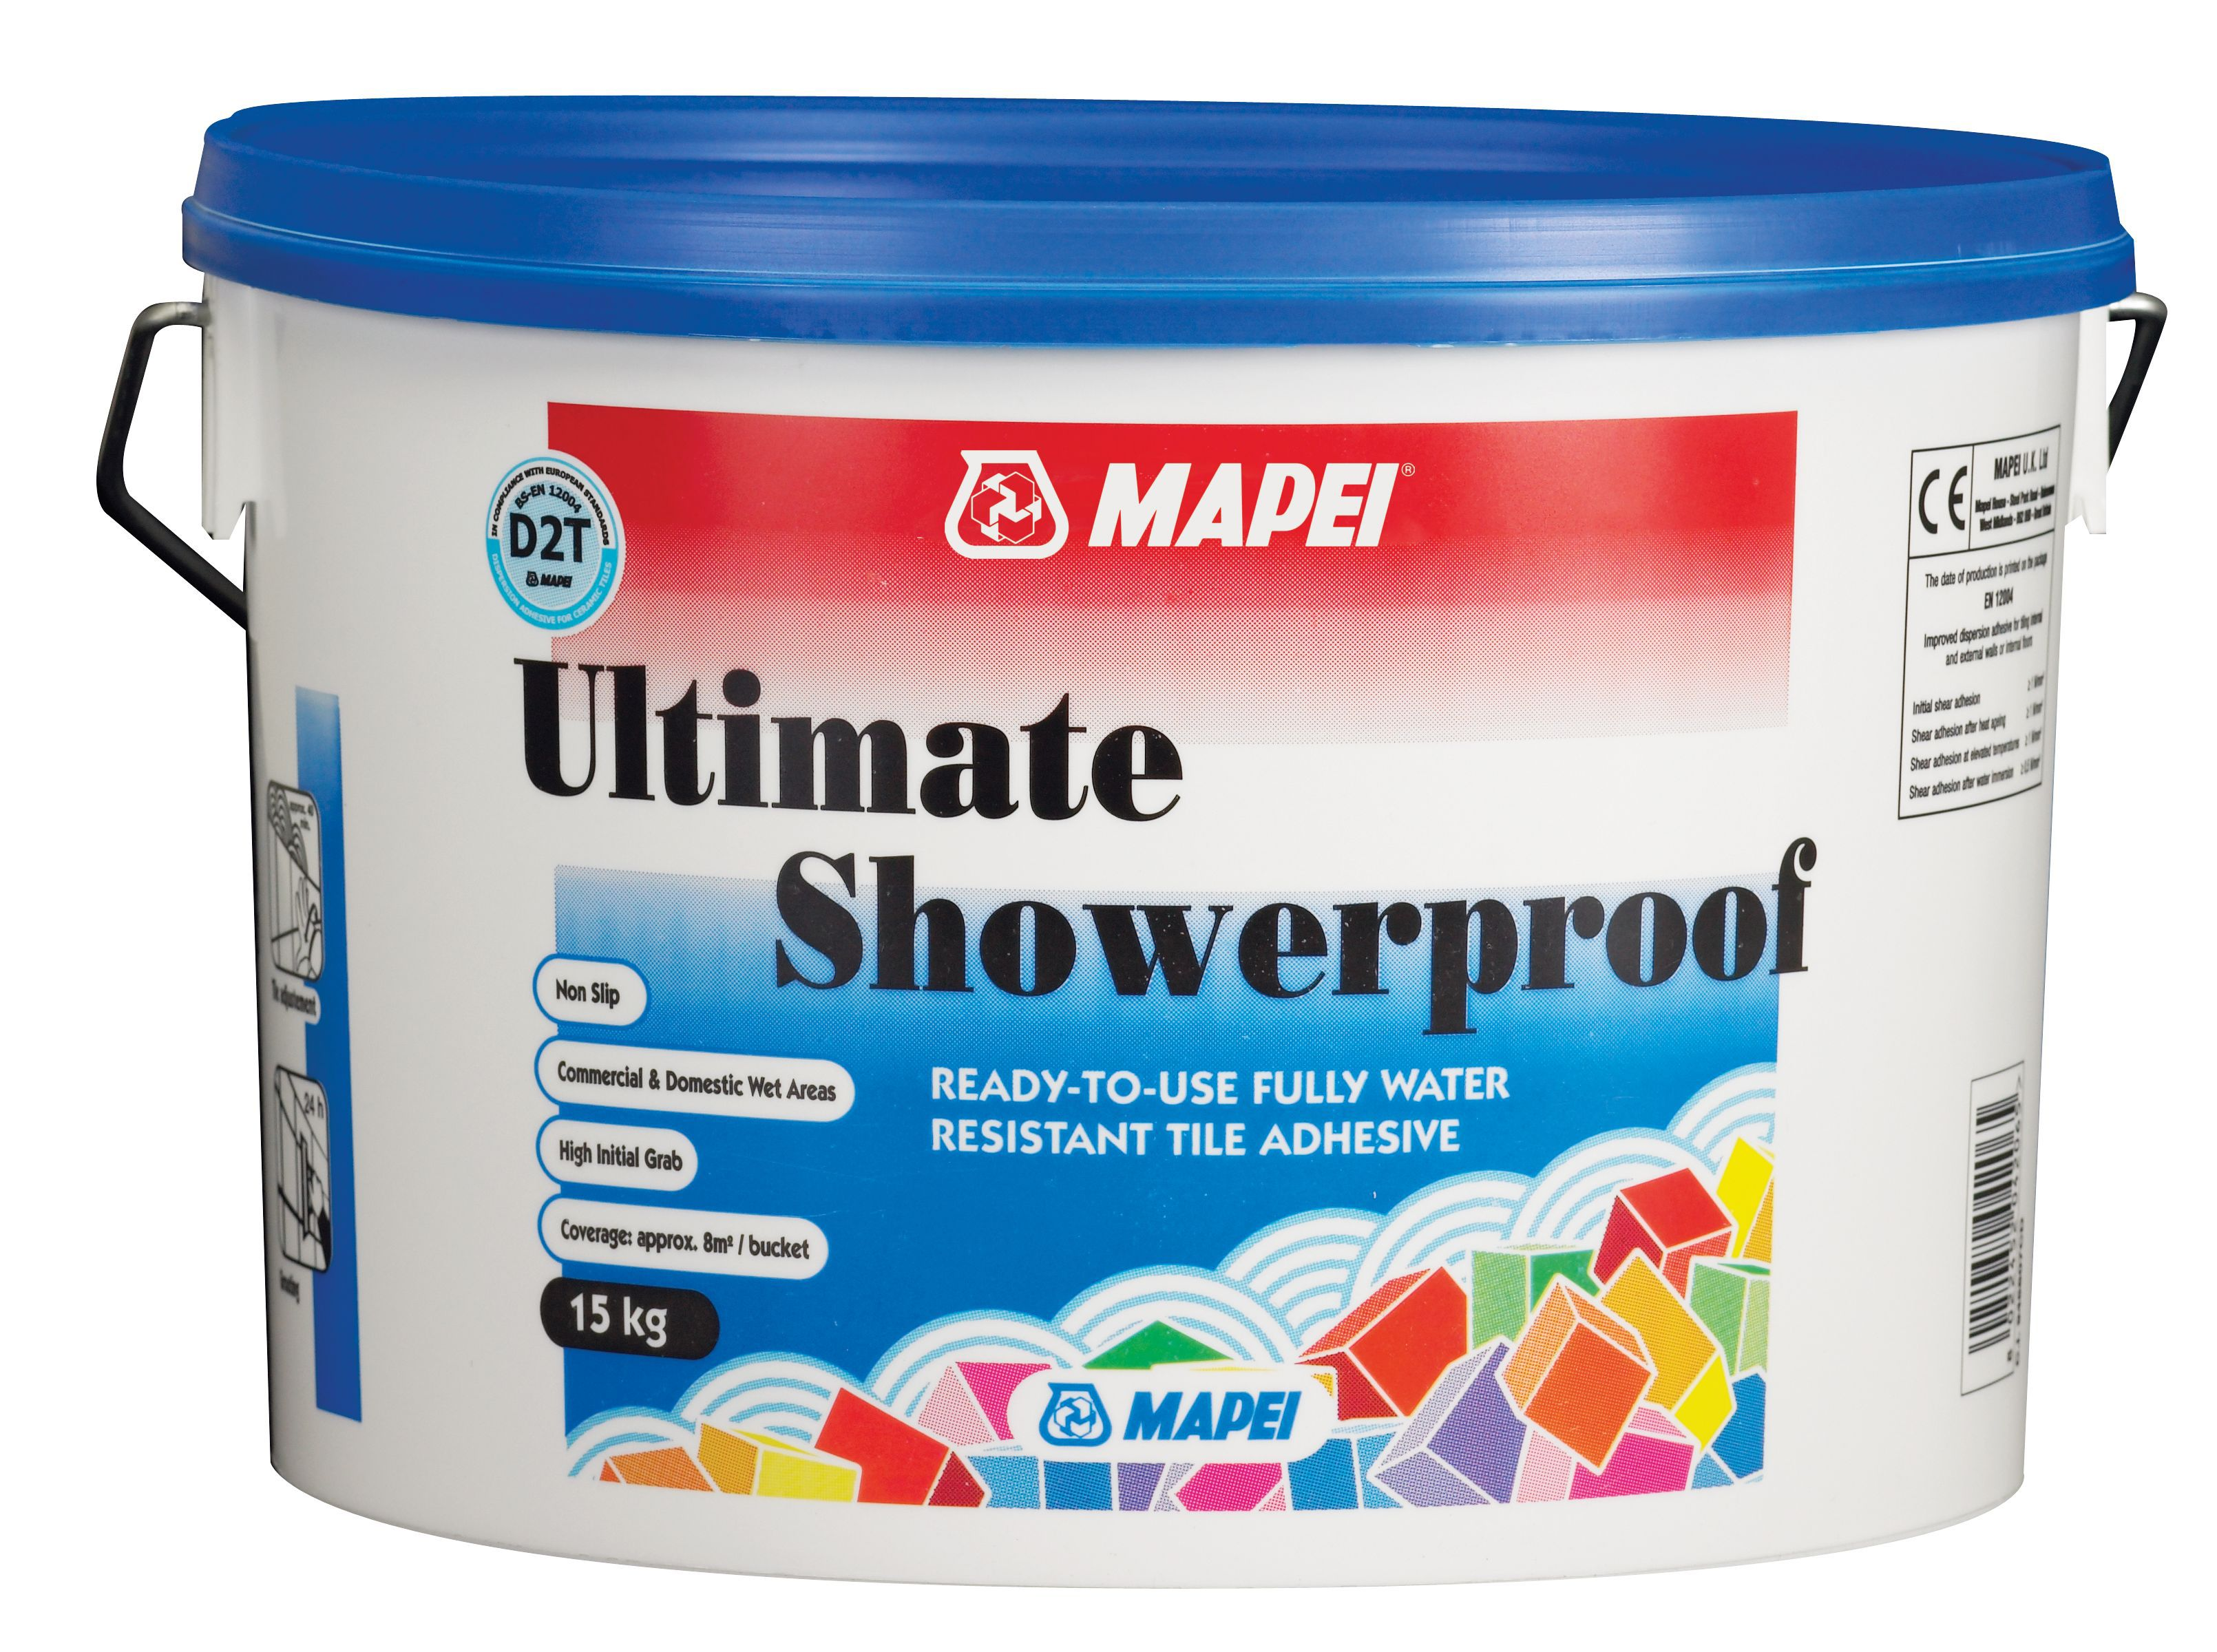 mapei ultimate shower proof ready mixed cream tile adhesive 15kg